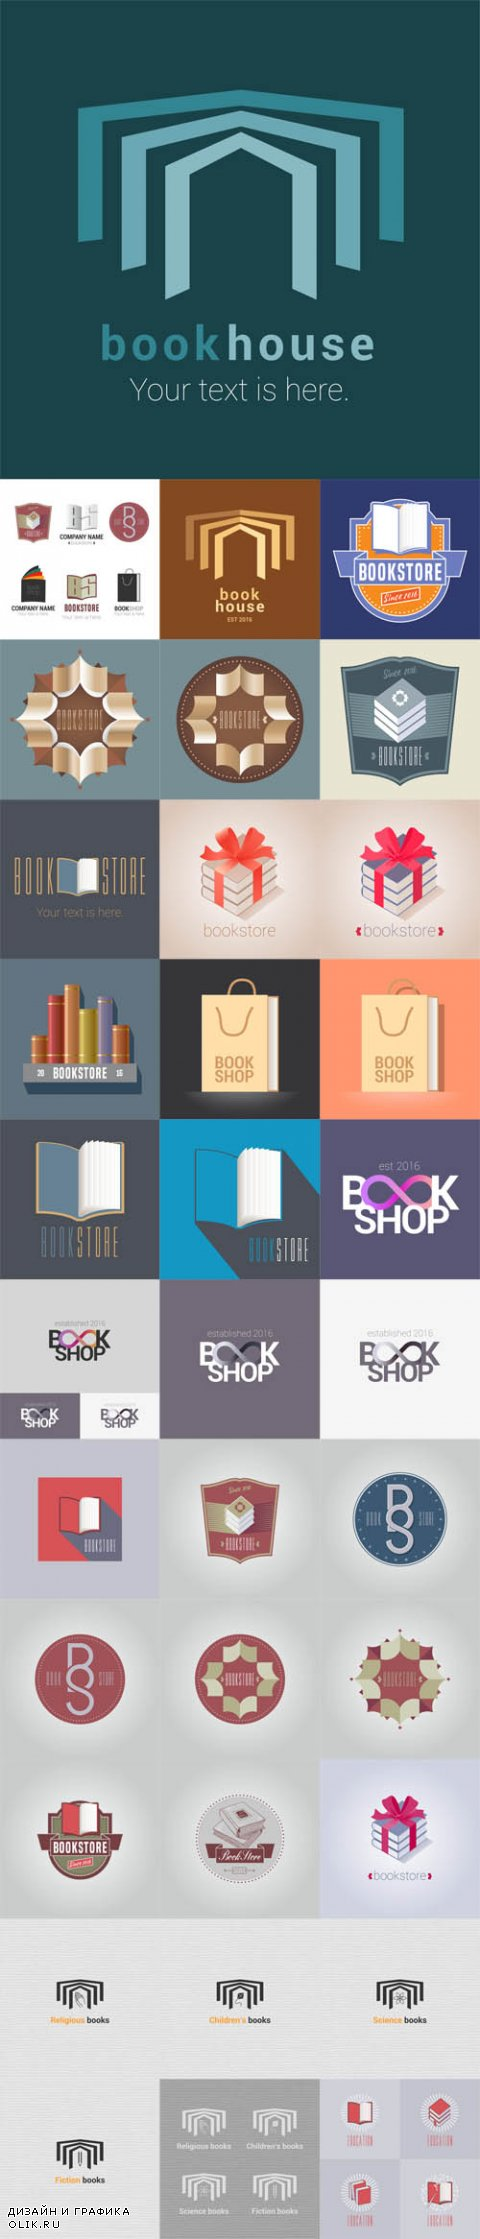 Vector Bookstore, bookshop emblem, sign, symbol, logo, icon